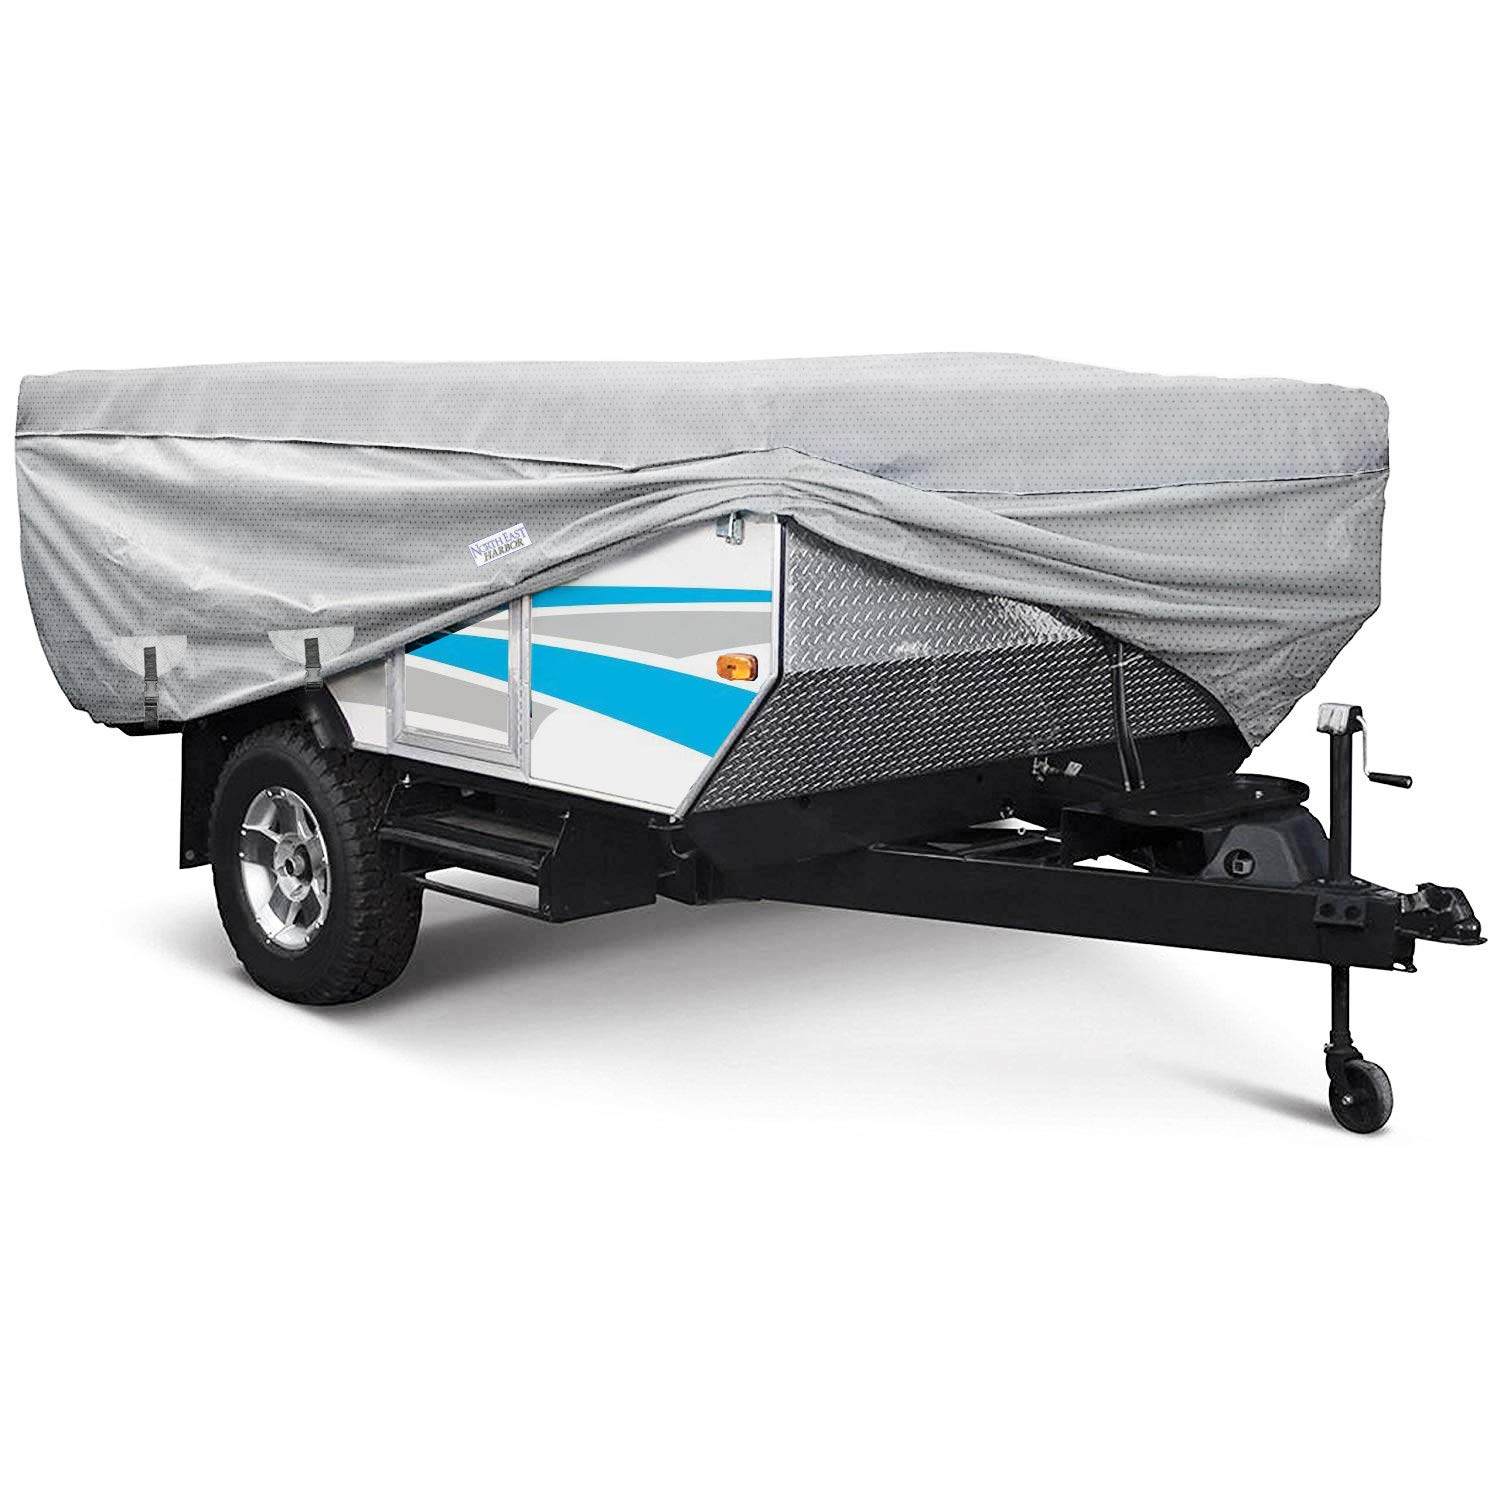 Waterproof Superior Folding Camping Travel Trailer Storage Cover Fits Length 12-14 Heavy Duty 4 Layer Fabric Pop-Up Tent Trailers Cover 180 L x 88 W x 42 H